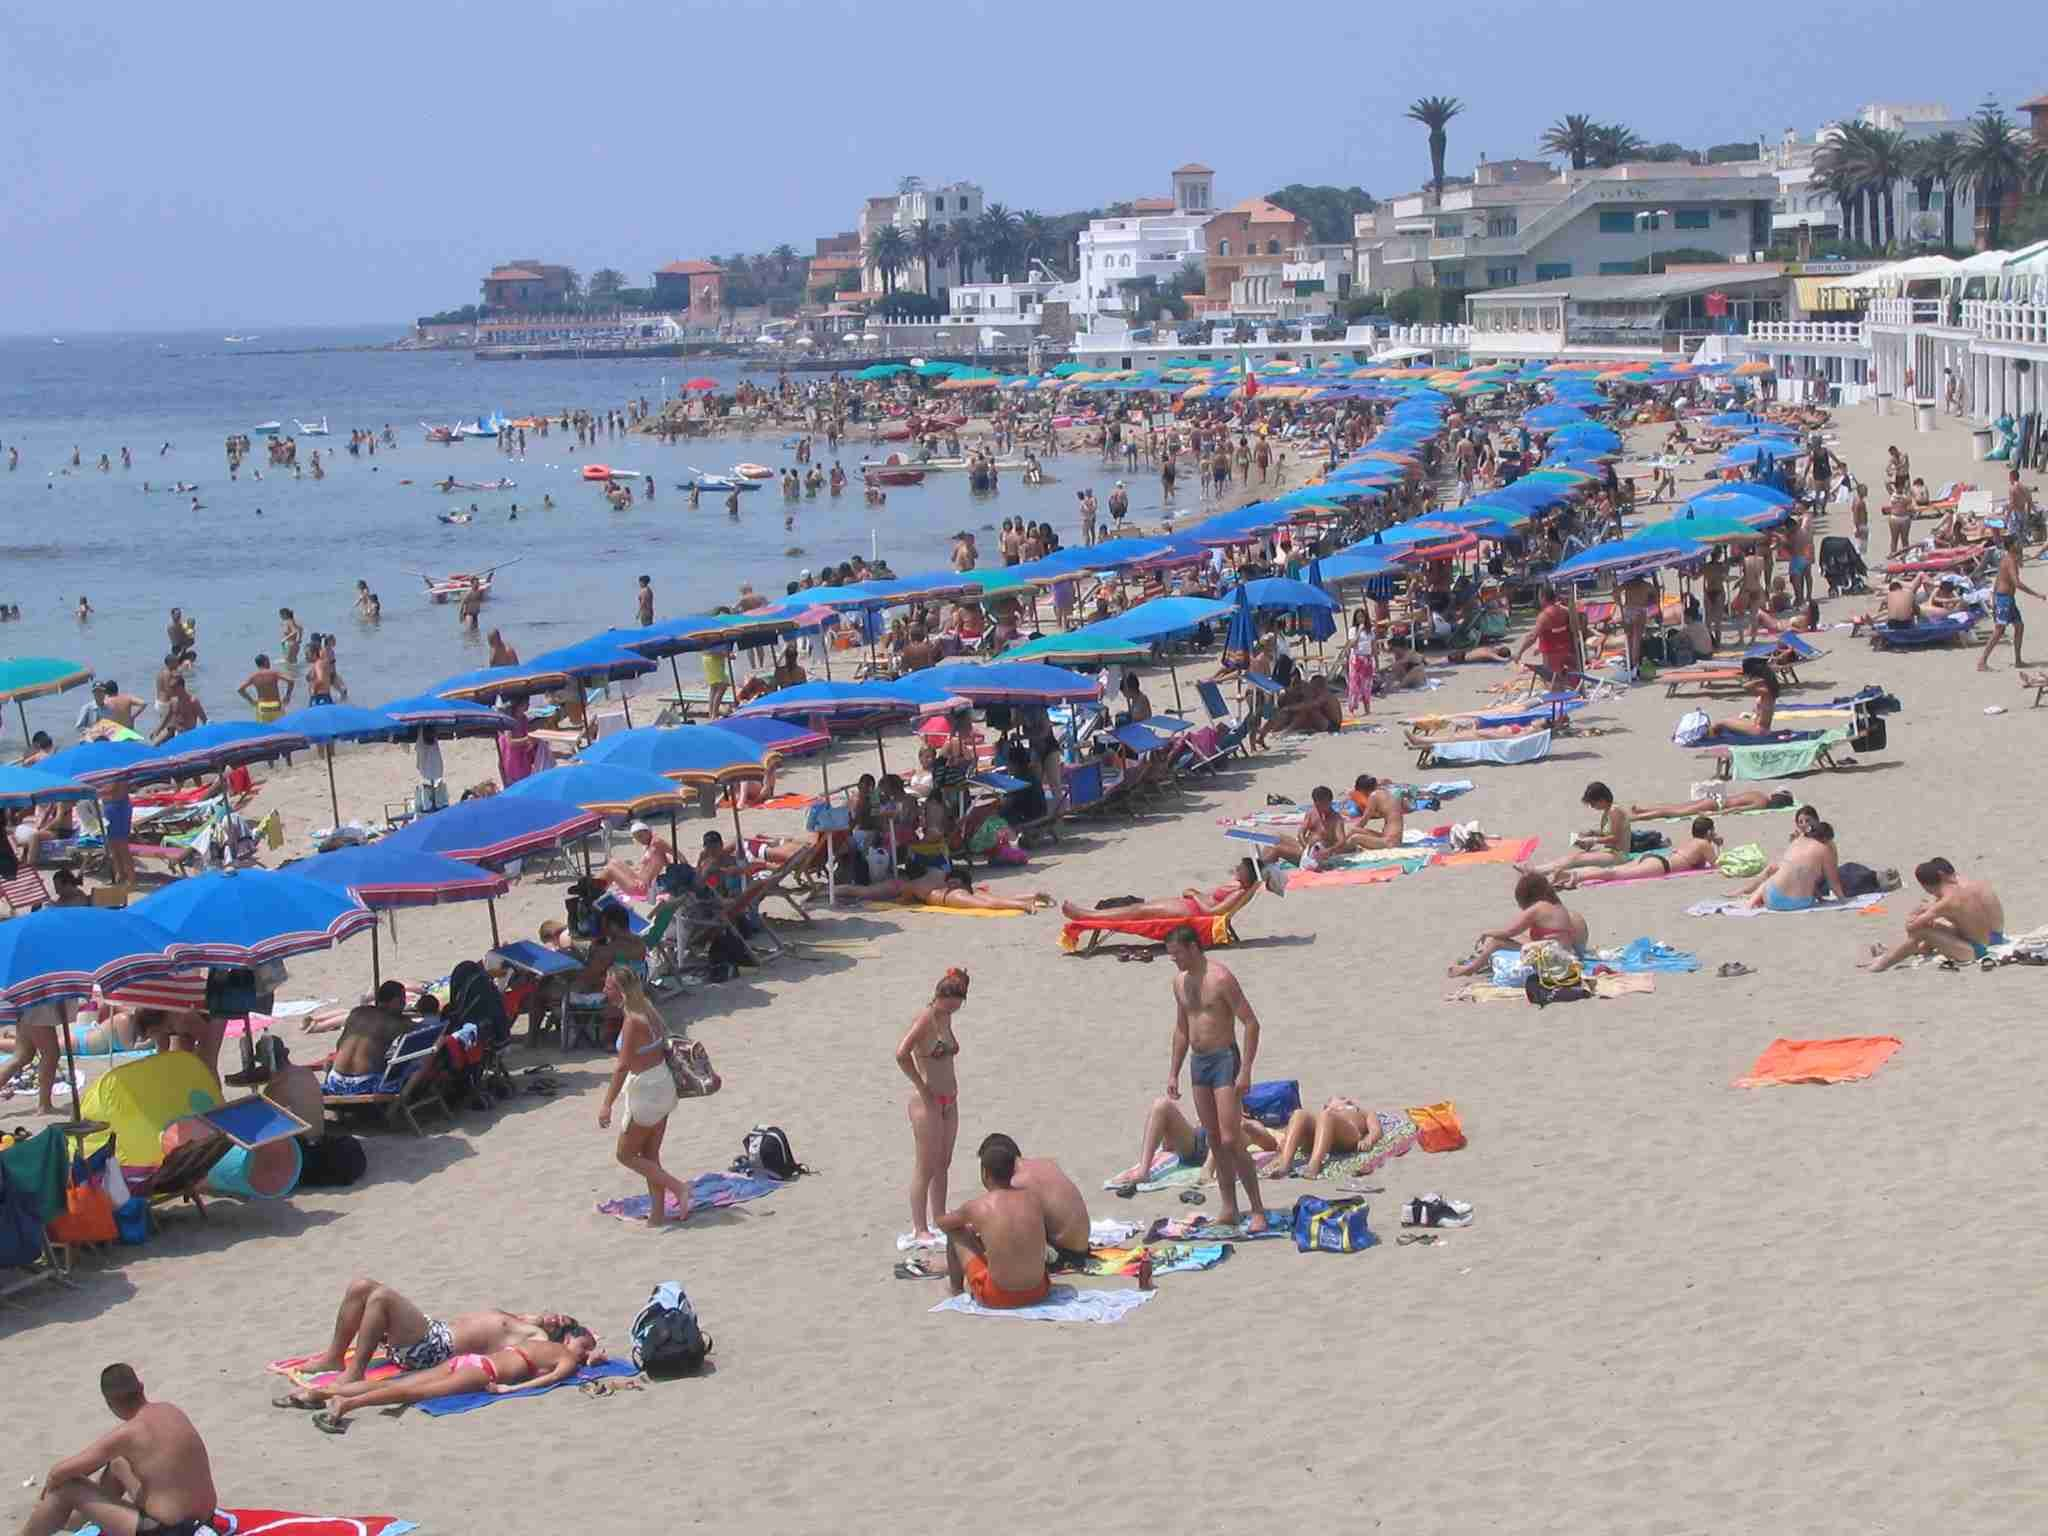 Santa Marinella Italy Oh The Water Beaches Boardwalks Living There For Three Months Was A Bliss And Why Did We Have To Leave